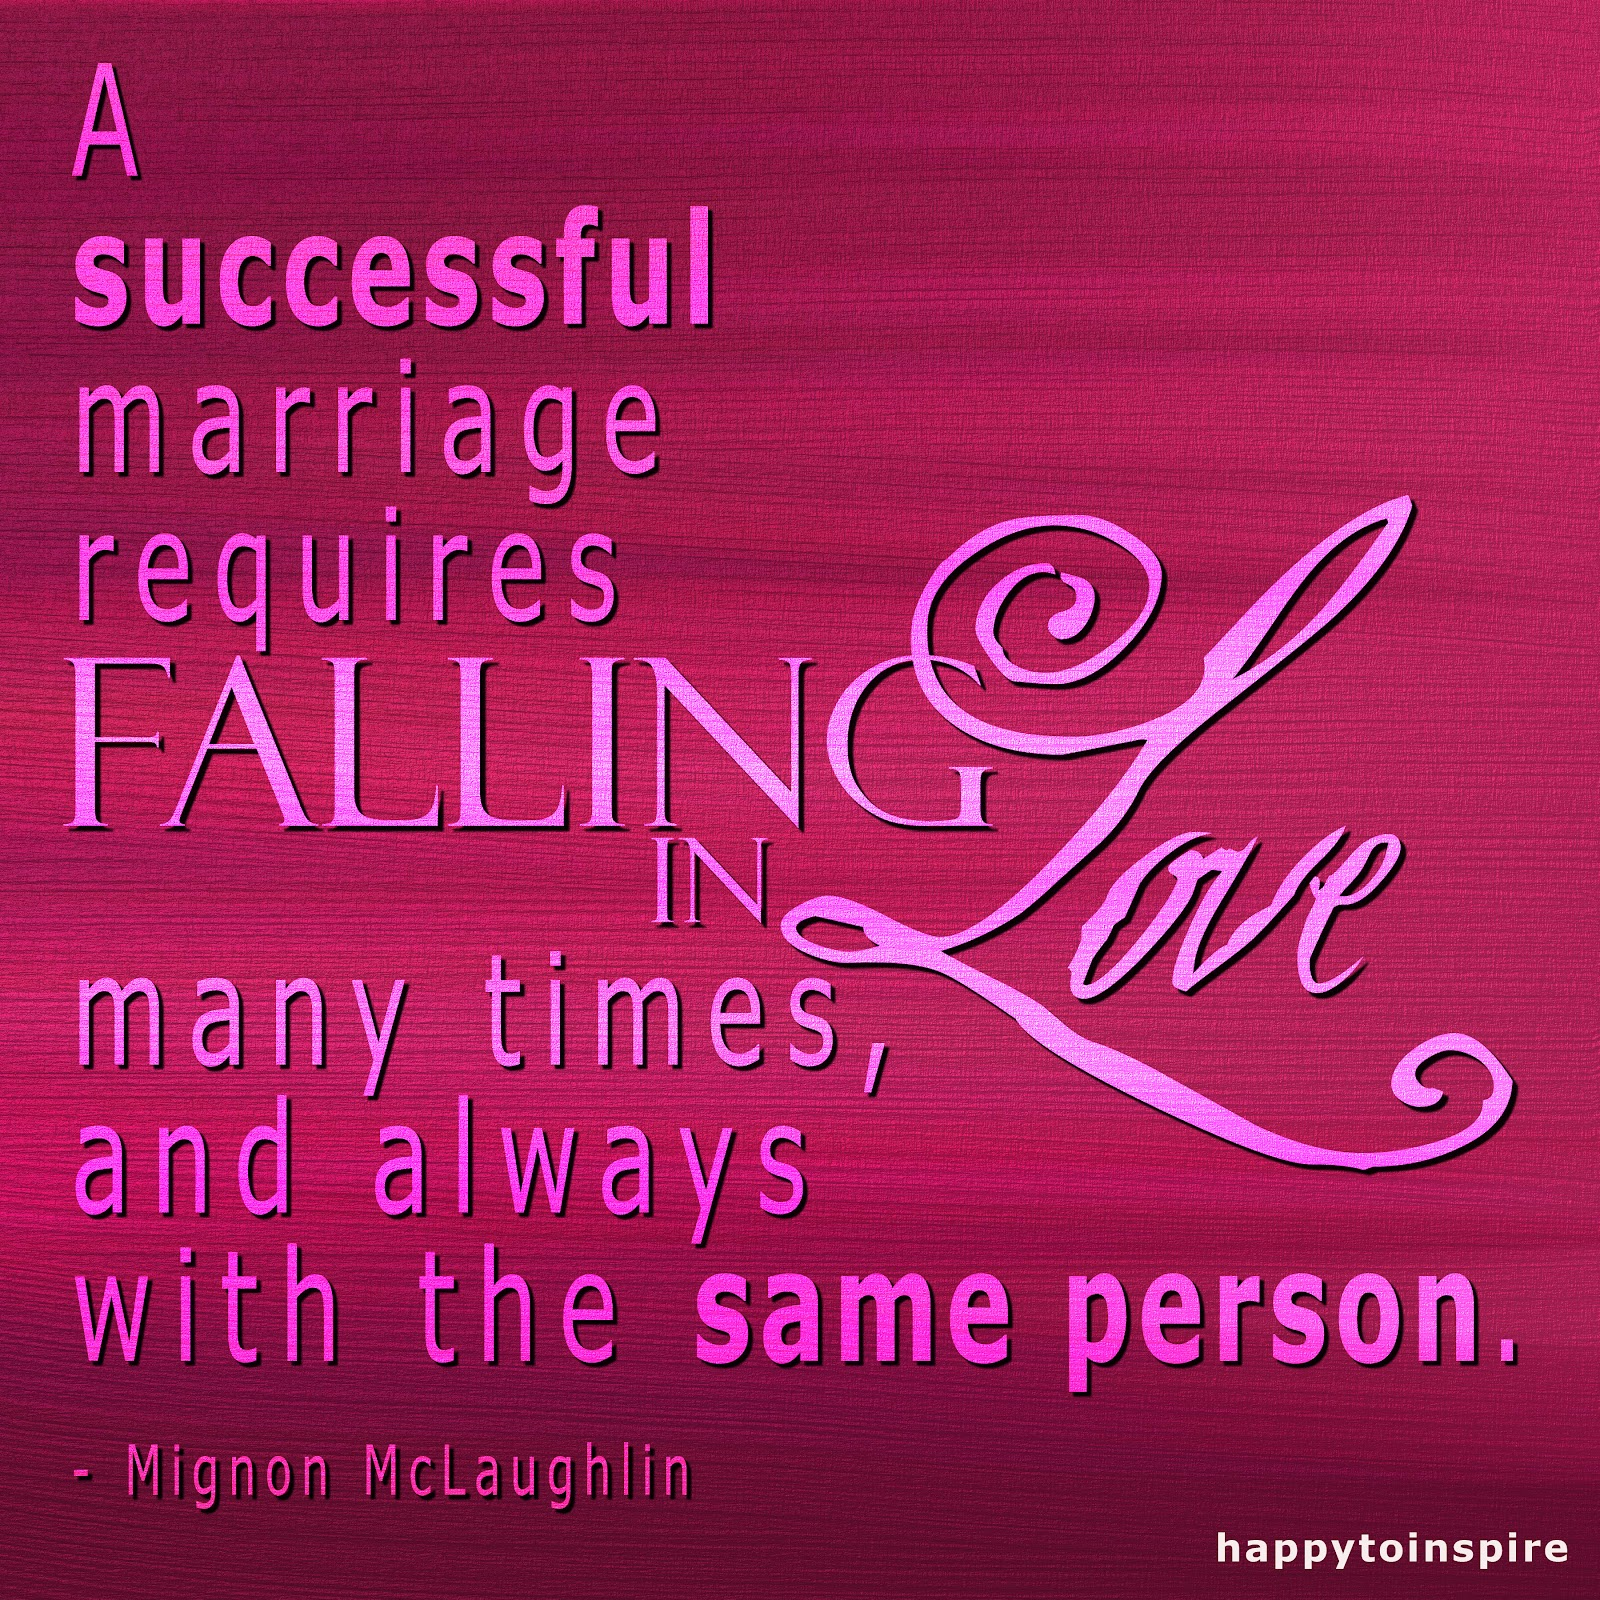 Marriage builders successful marriage advice 2015 personal blog